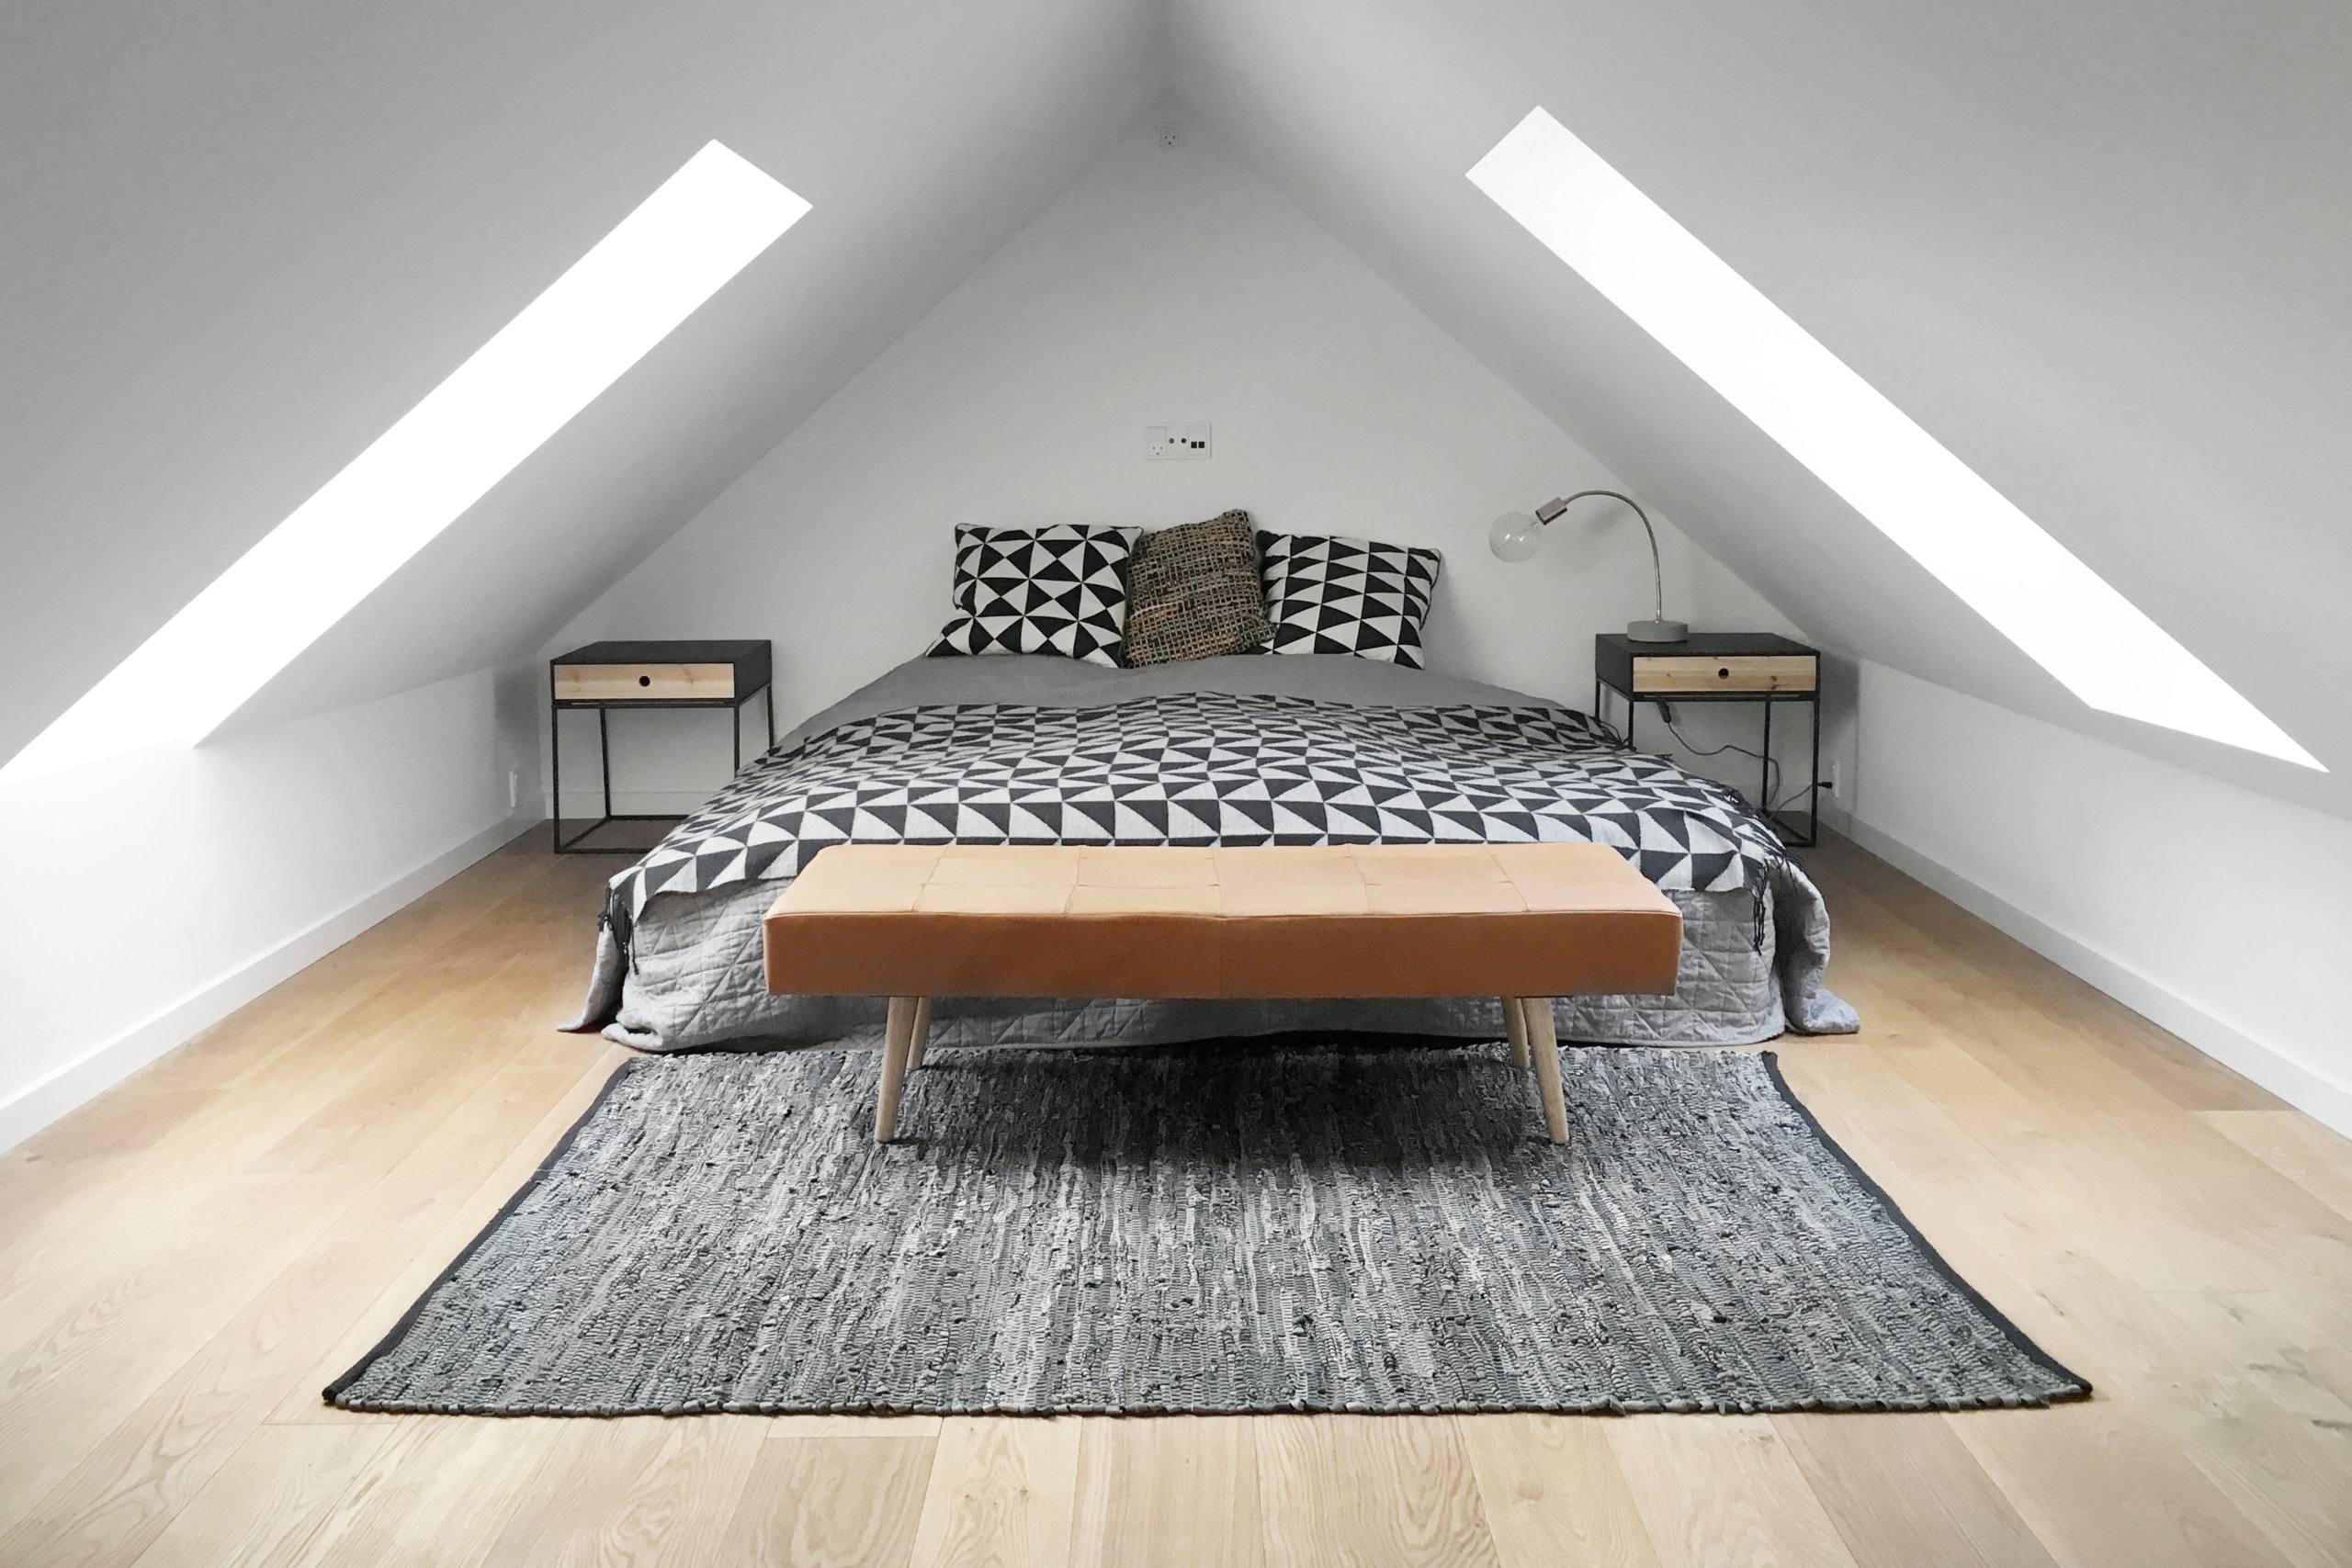 Attic bedroom with ample natural light and bedding that adds pattern